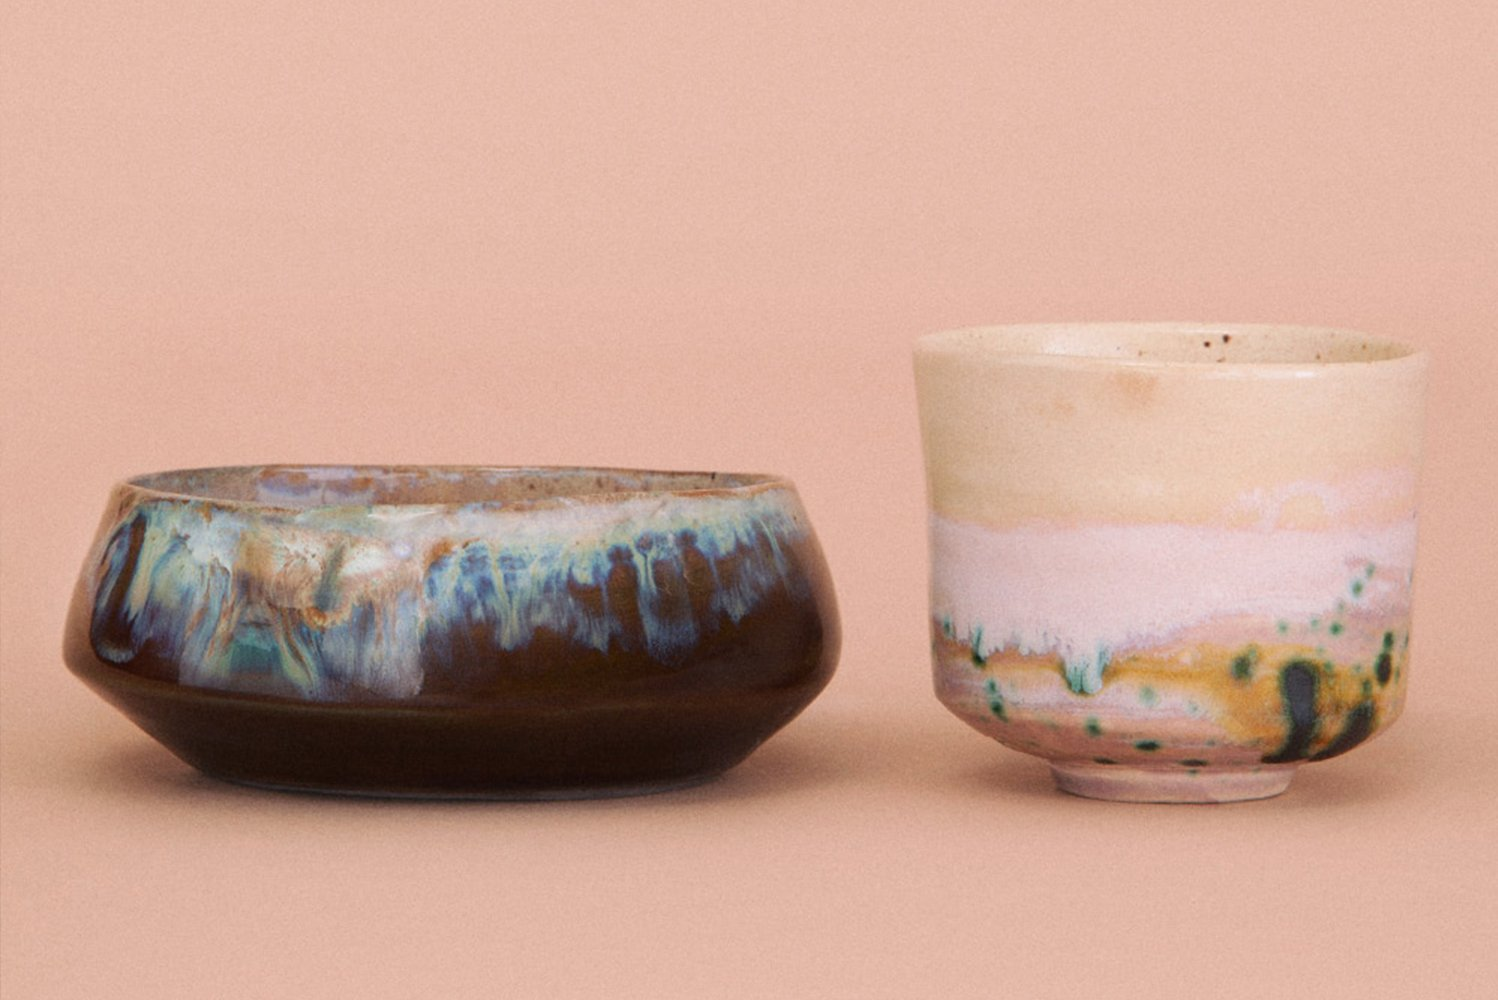 Originated from an ancient Japanese technique called Raku, the pieces come alive from special chemical processes.